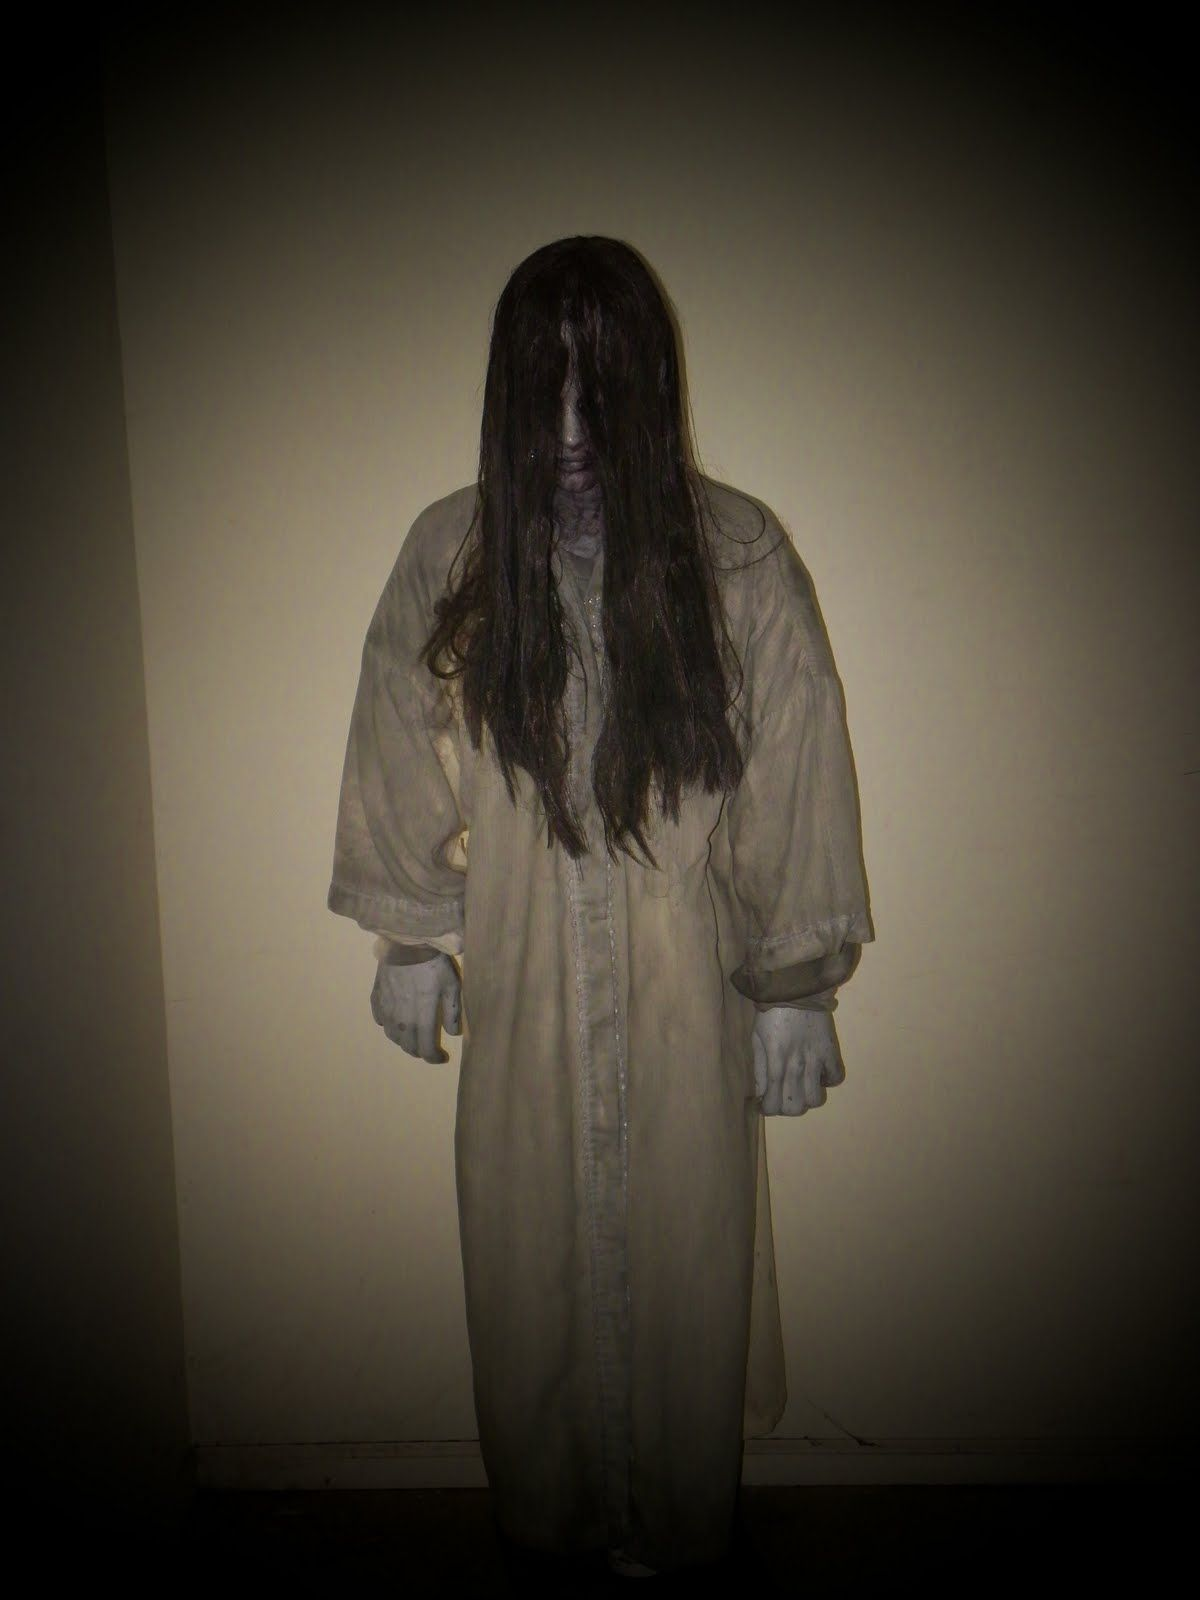 Free Haunted House Prop Ideas Creepycollection Com Haunted House